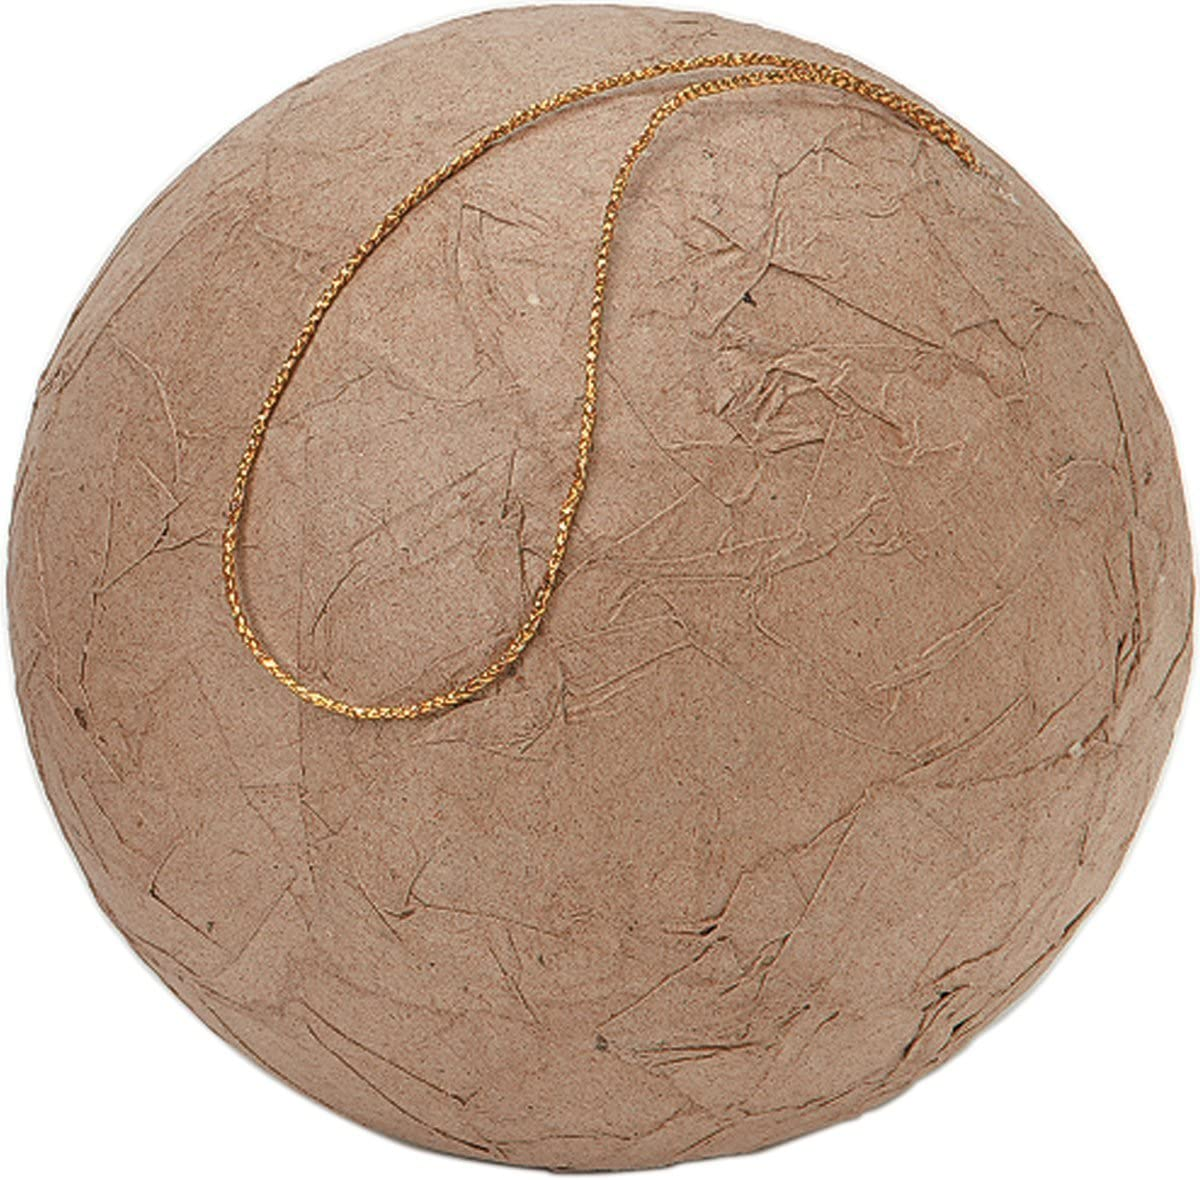 80mm Darice Natural Paper Mache Ball Ornament Brown with Wrinkled Texture